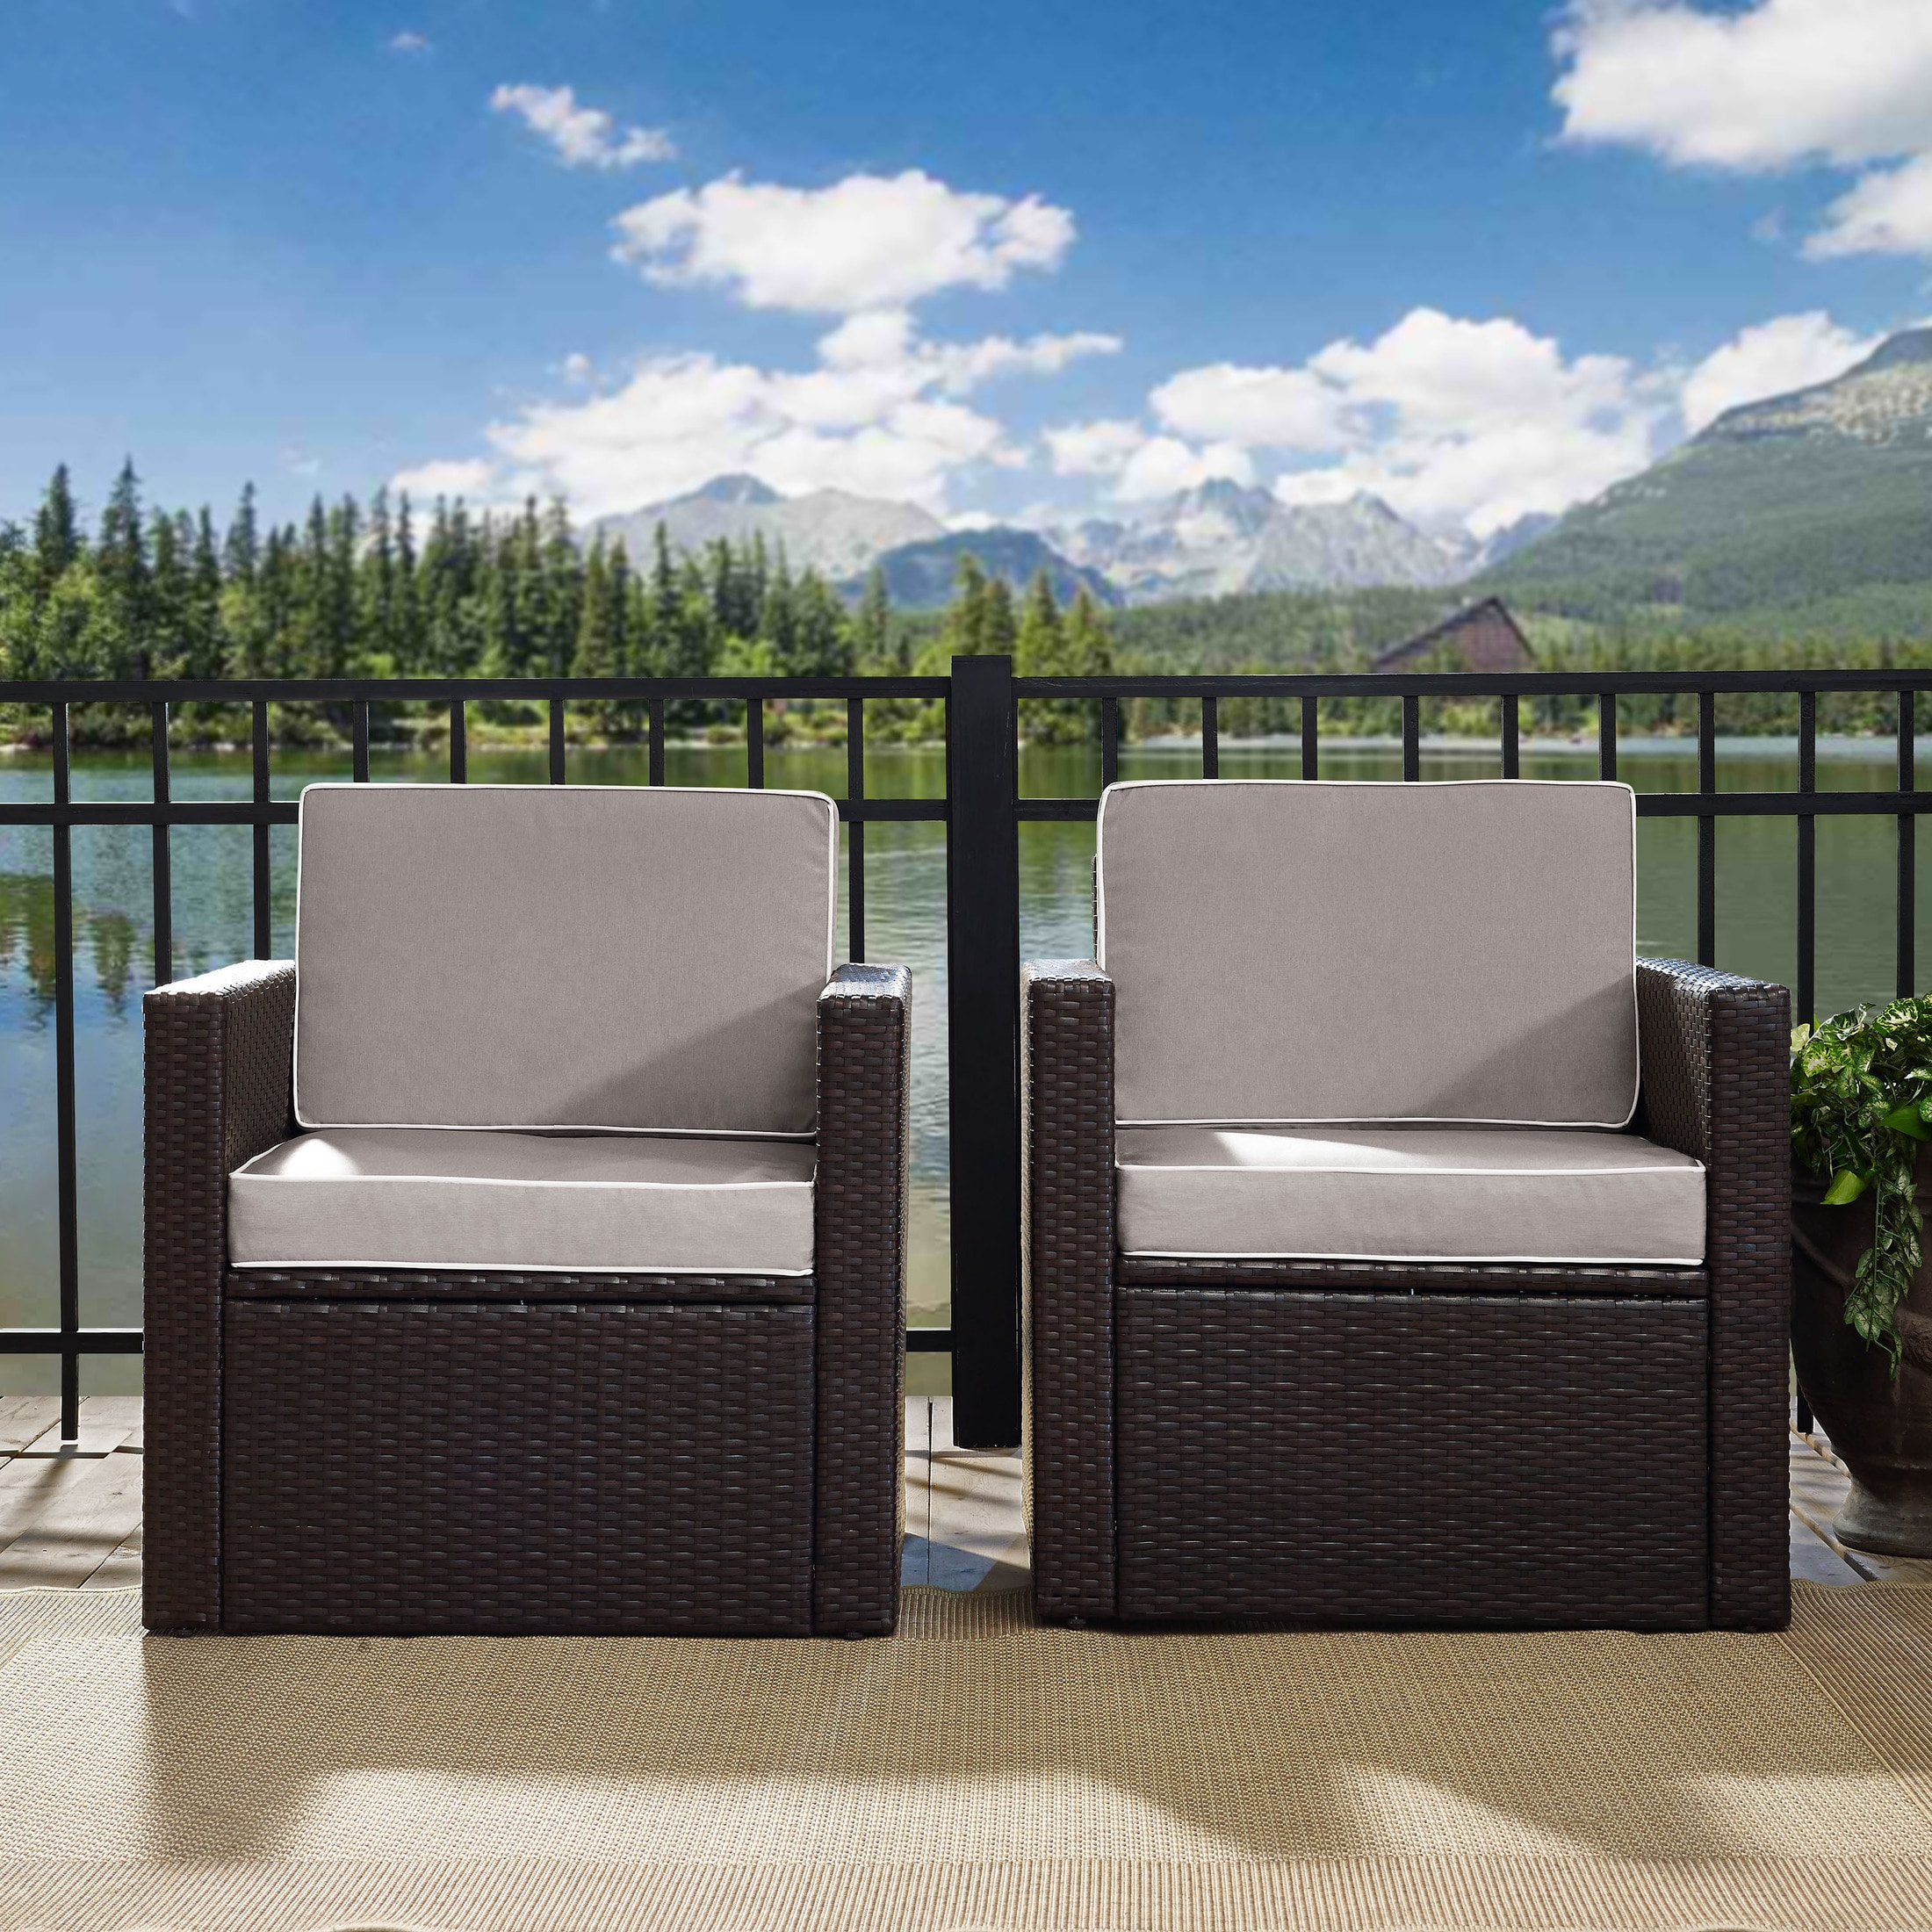 Outdoor Furniture - Aldo Set of 2 Outdoor Chairs and End Table Set